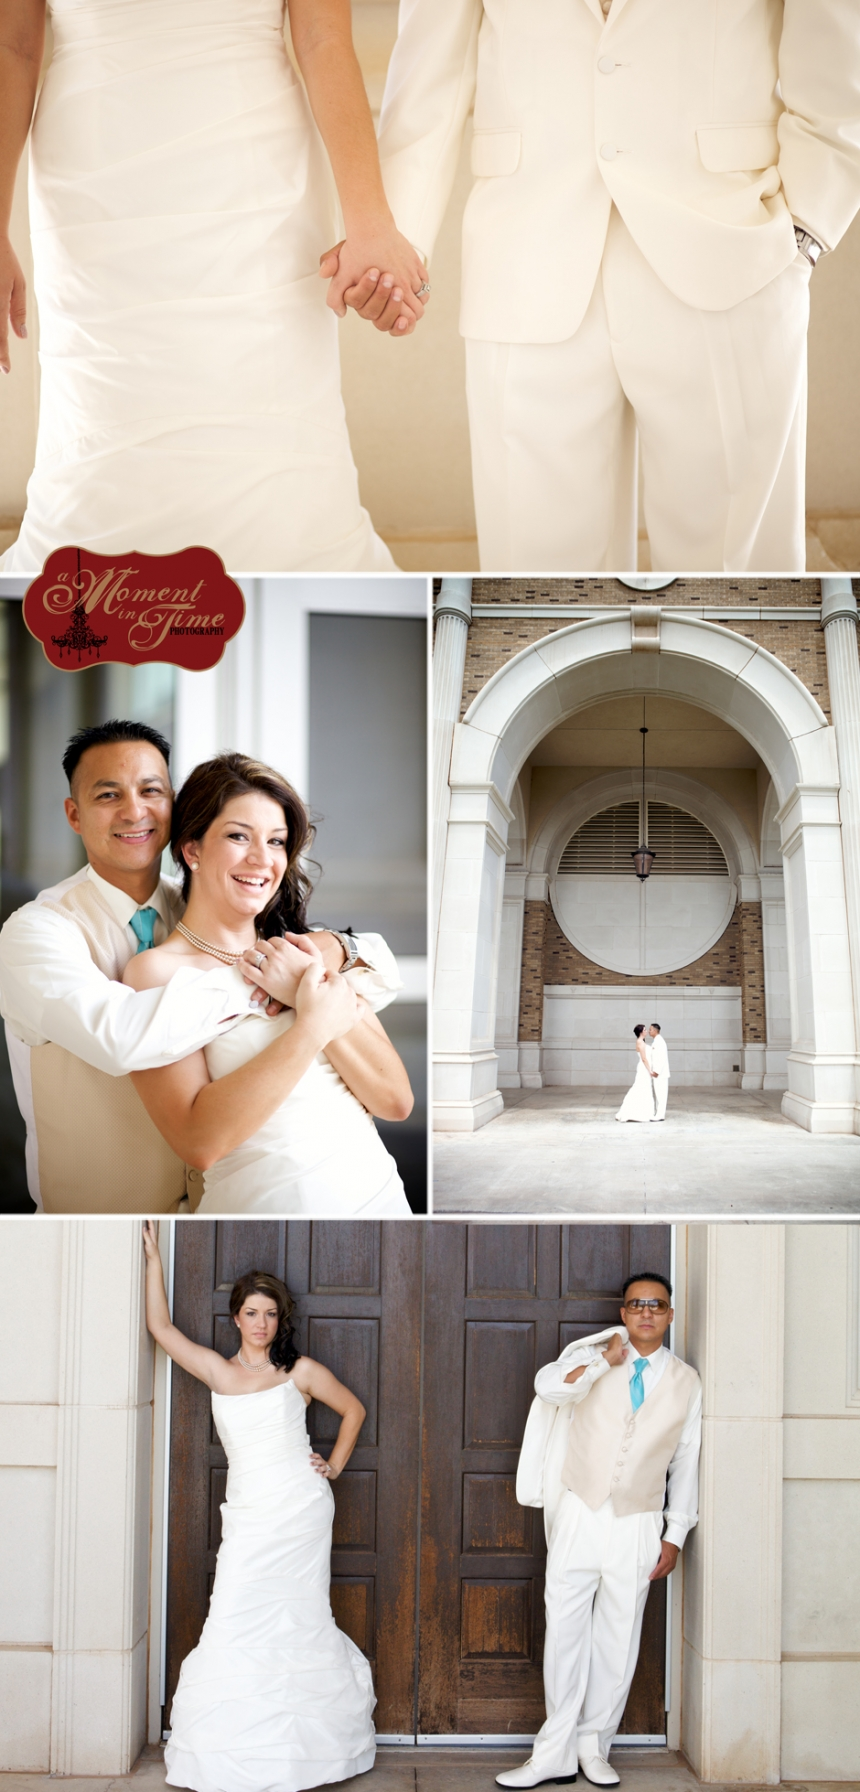 Lubbock wedding photographer Jennifer Nieland of A Moment in Time Photography took wedding pictures of Buck Trevino, or Bucky Trevino, and Meredith Simmons, now Meredith Trevino wedding photos at the Frazier Pavilion at Texas Tech. Frazier Pavilion wedding photos are below.